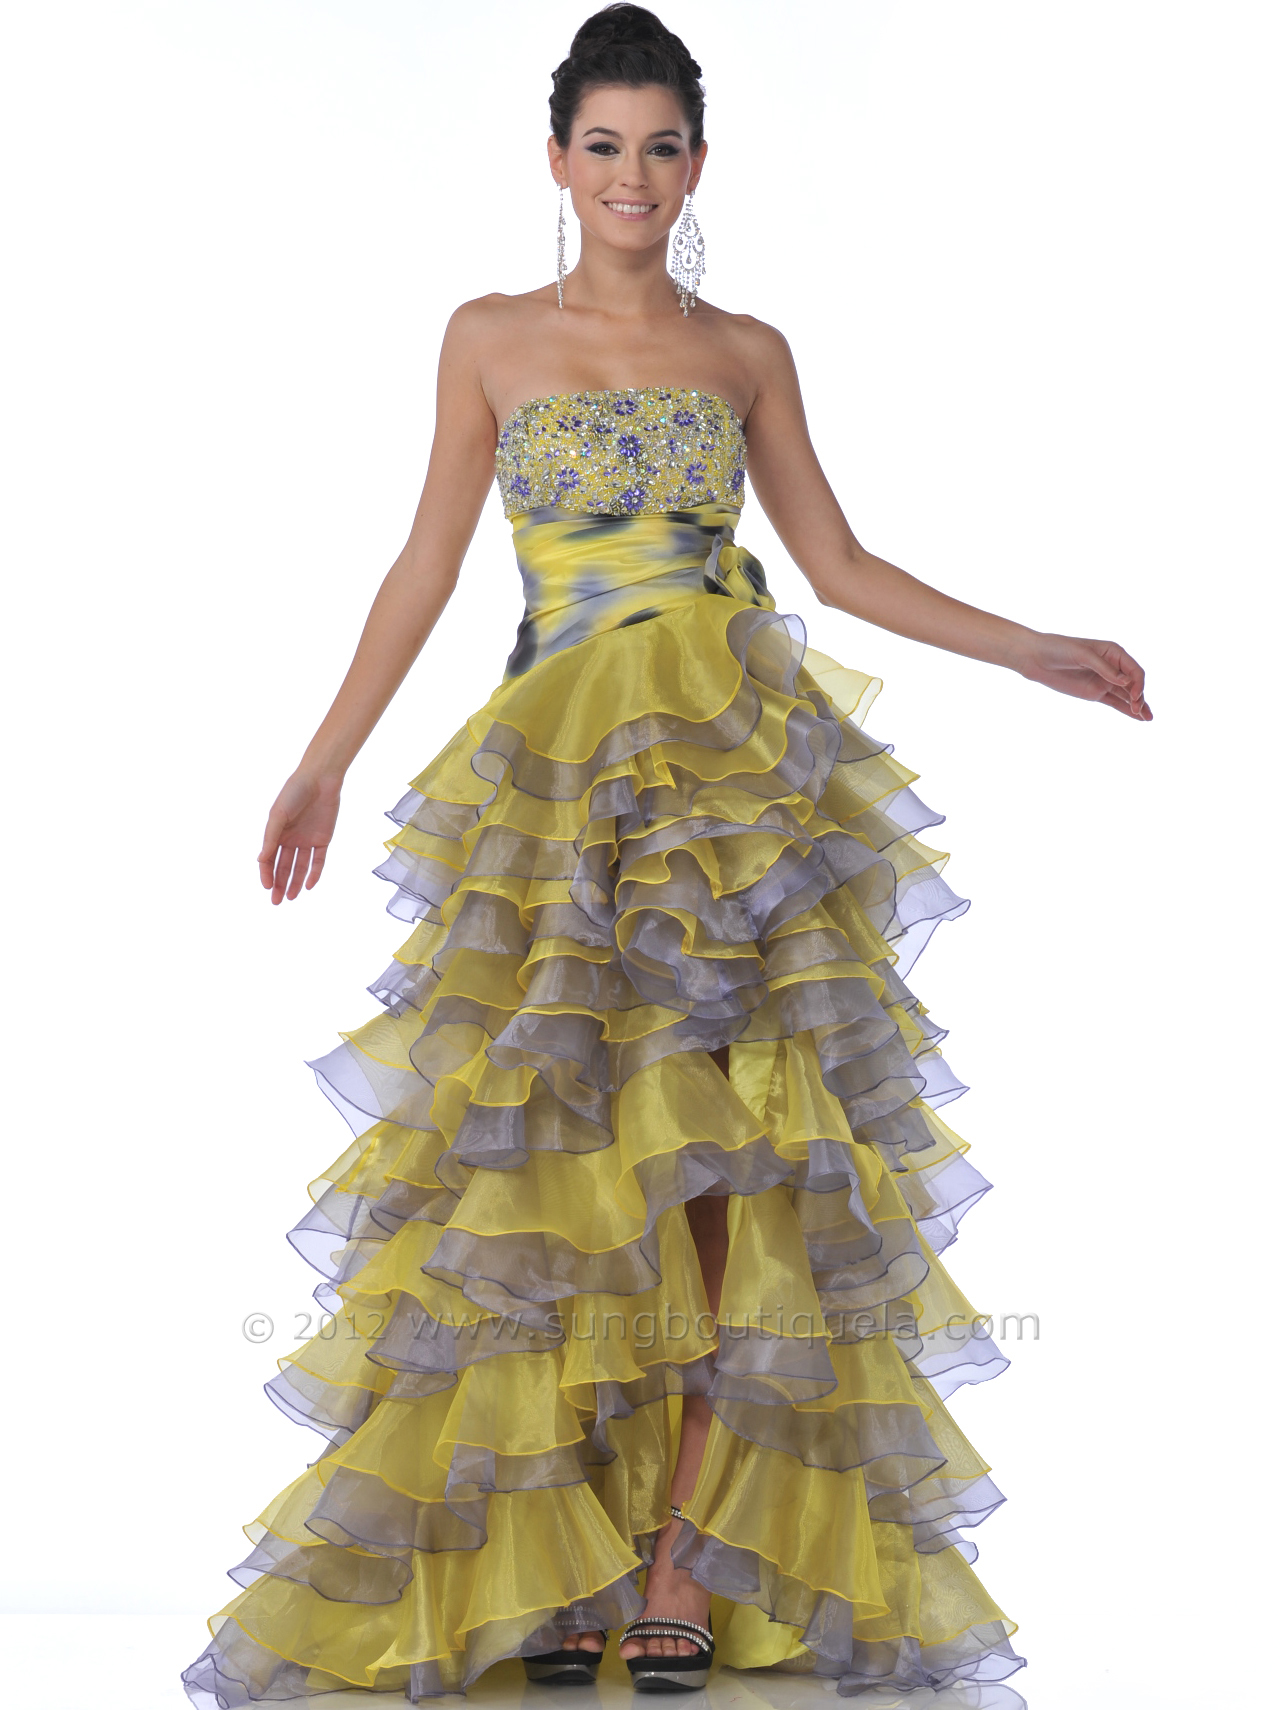 Strapless High Low Ruffle Tiered Prom Dress Sung